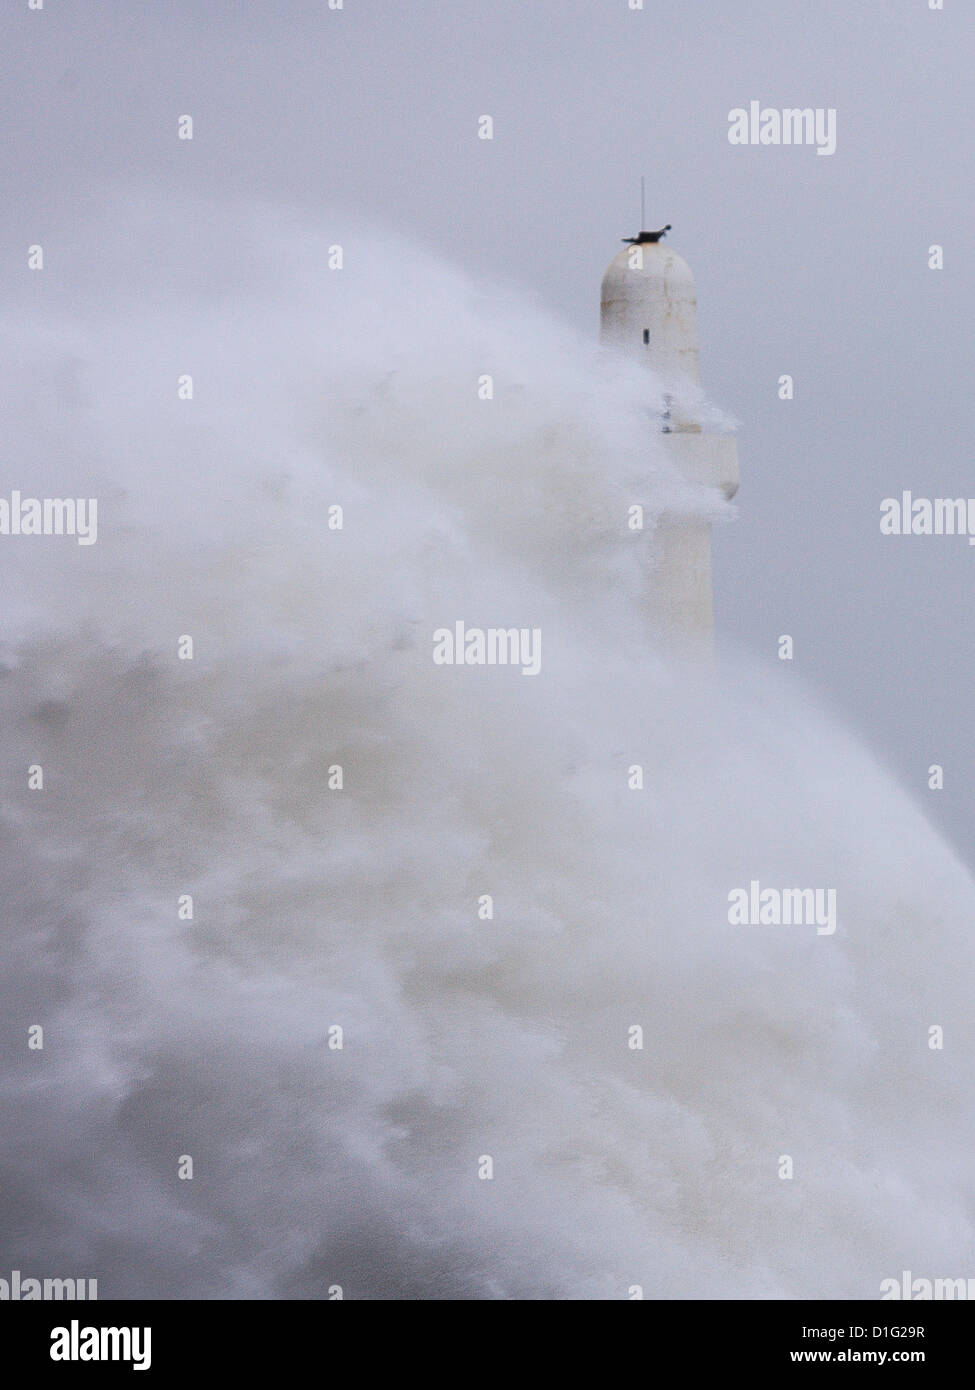 Breakwater at Aberdeen, Scotland under pressure from storm on Thursday 20th December 2012 about 10am. - Stock Image